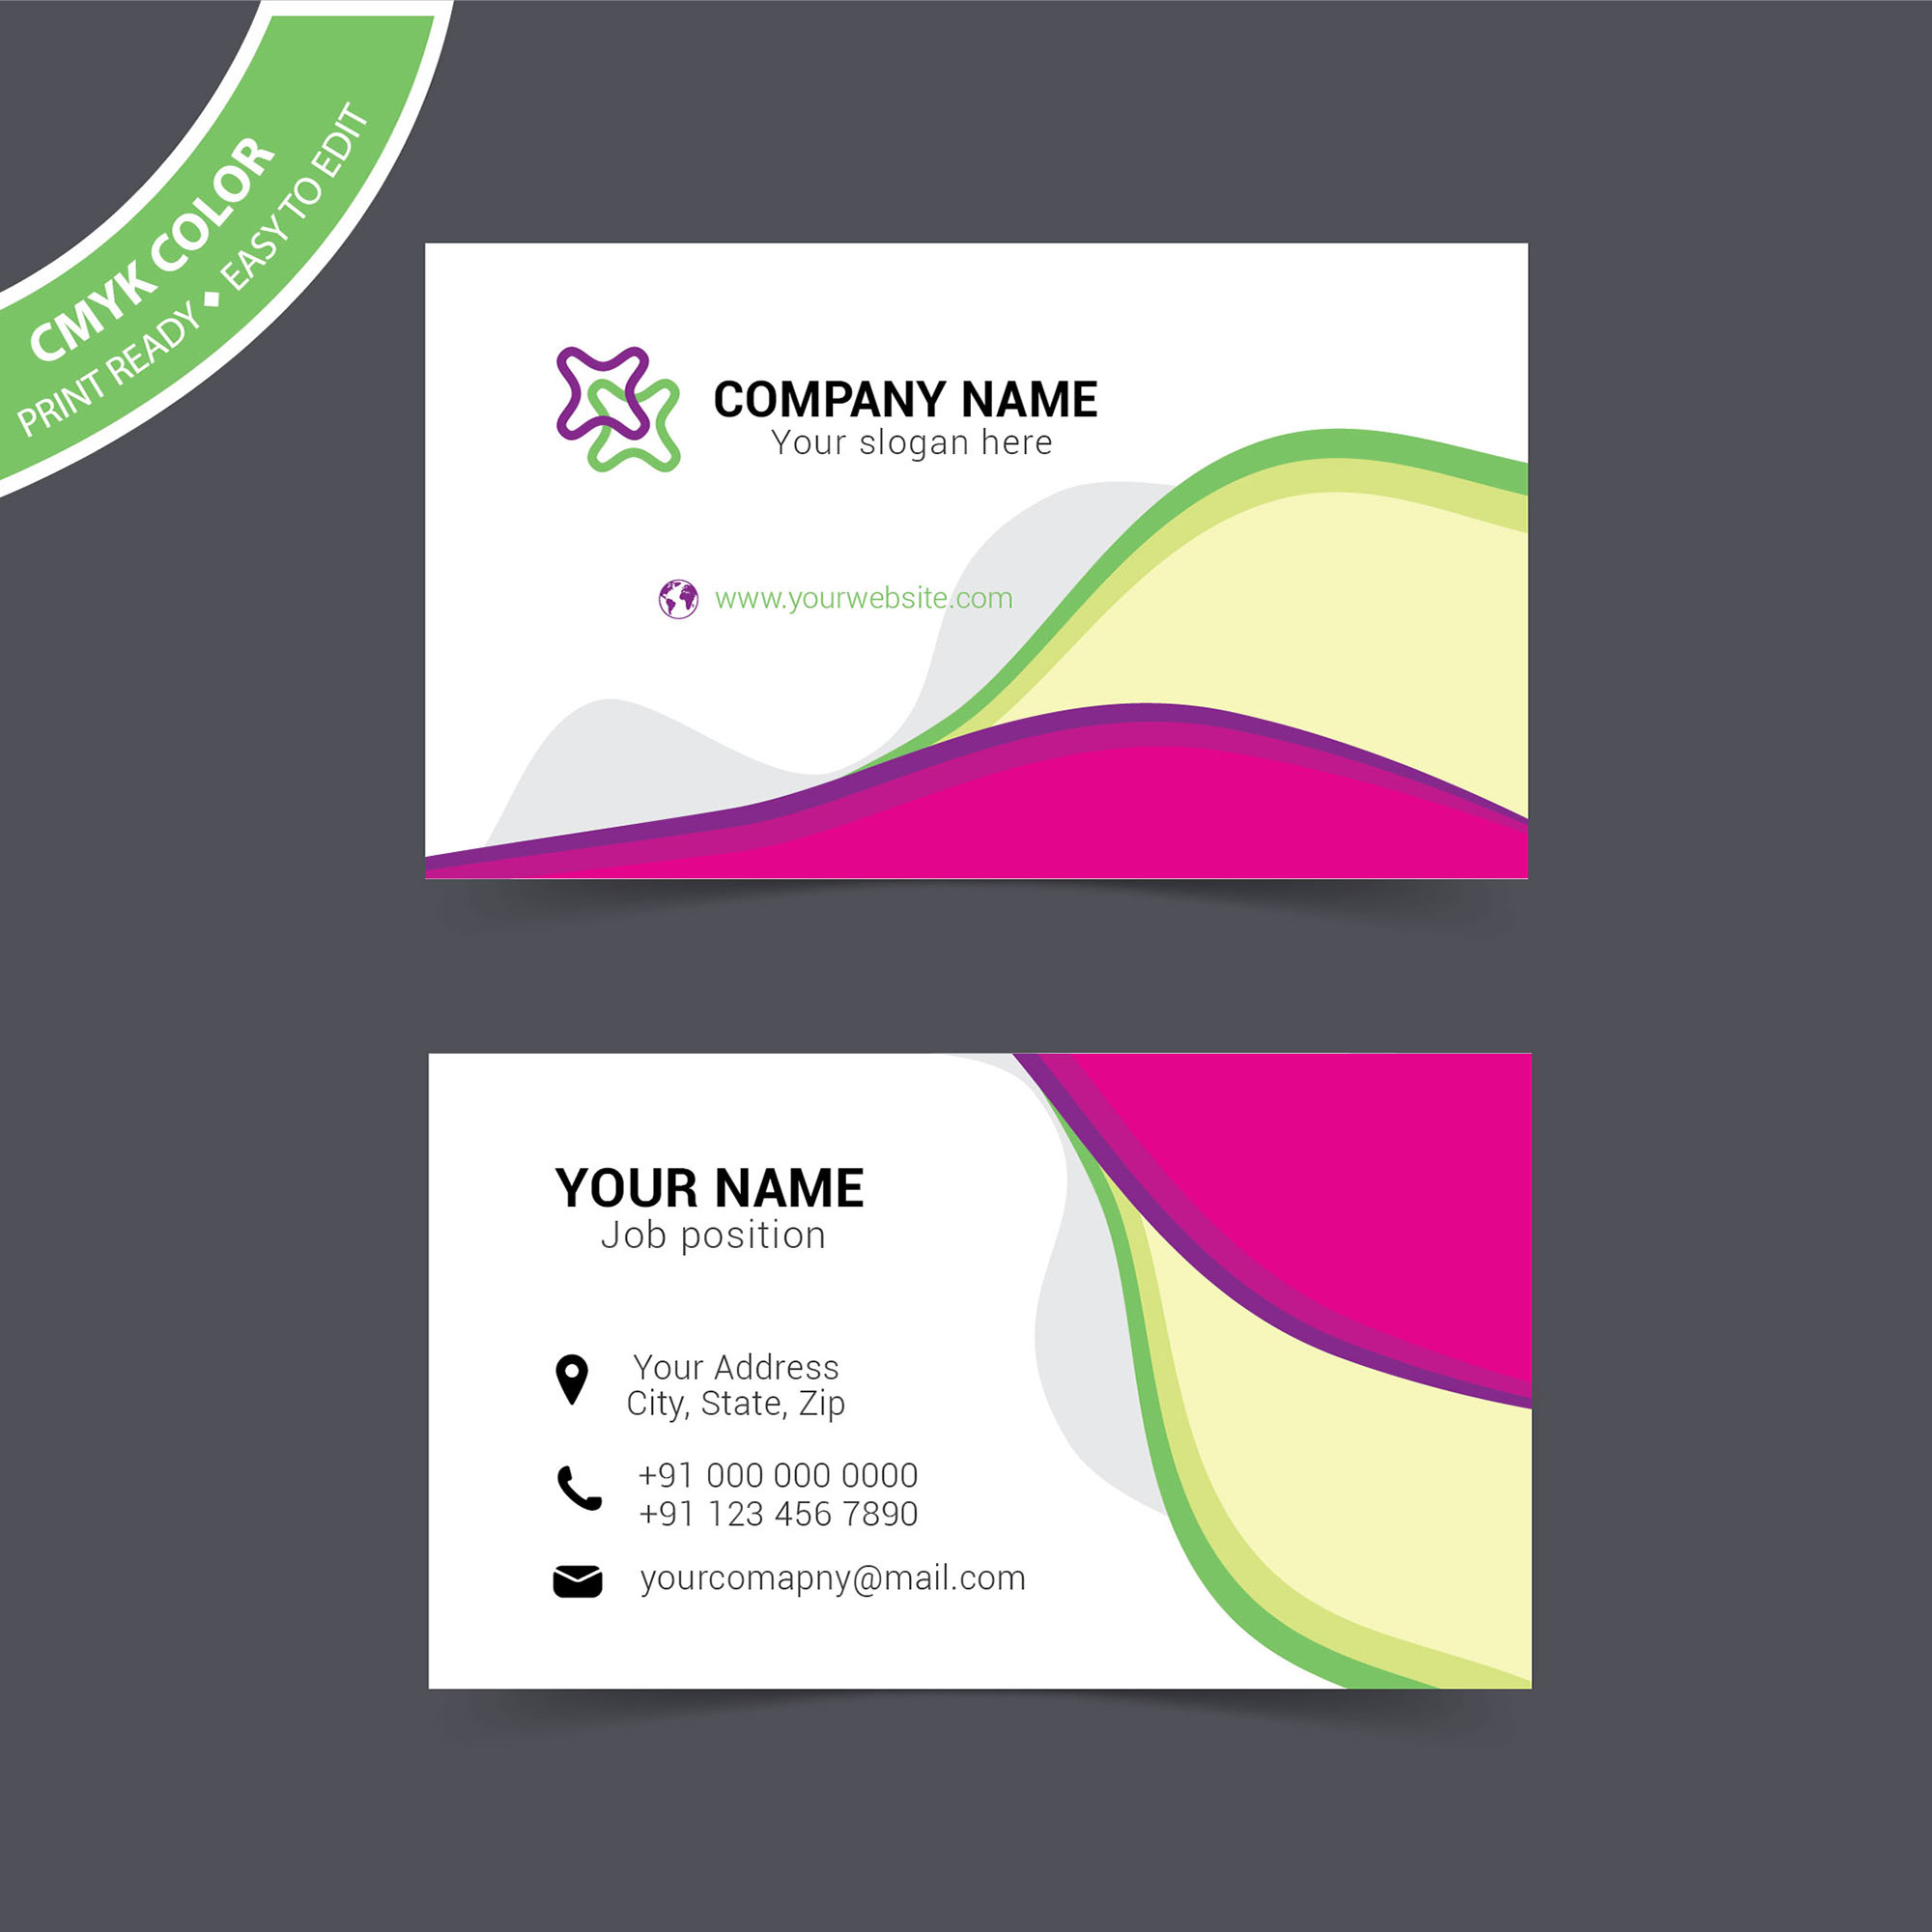 Visiting card design sample free download wisxi business card business cards business card design business card template design templates fbccfo Choice Image